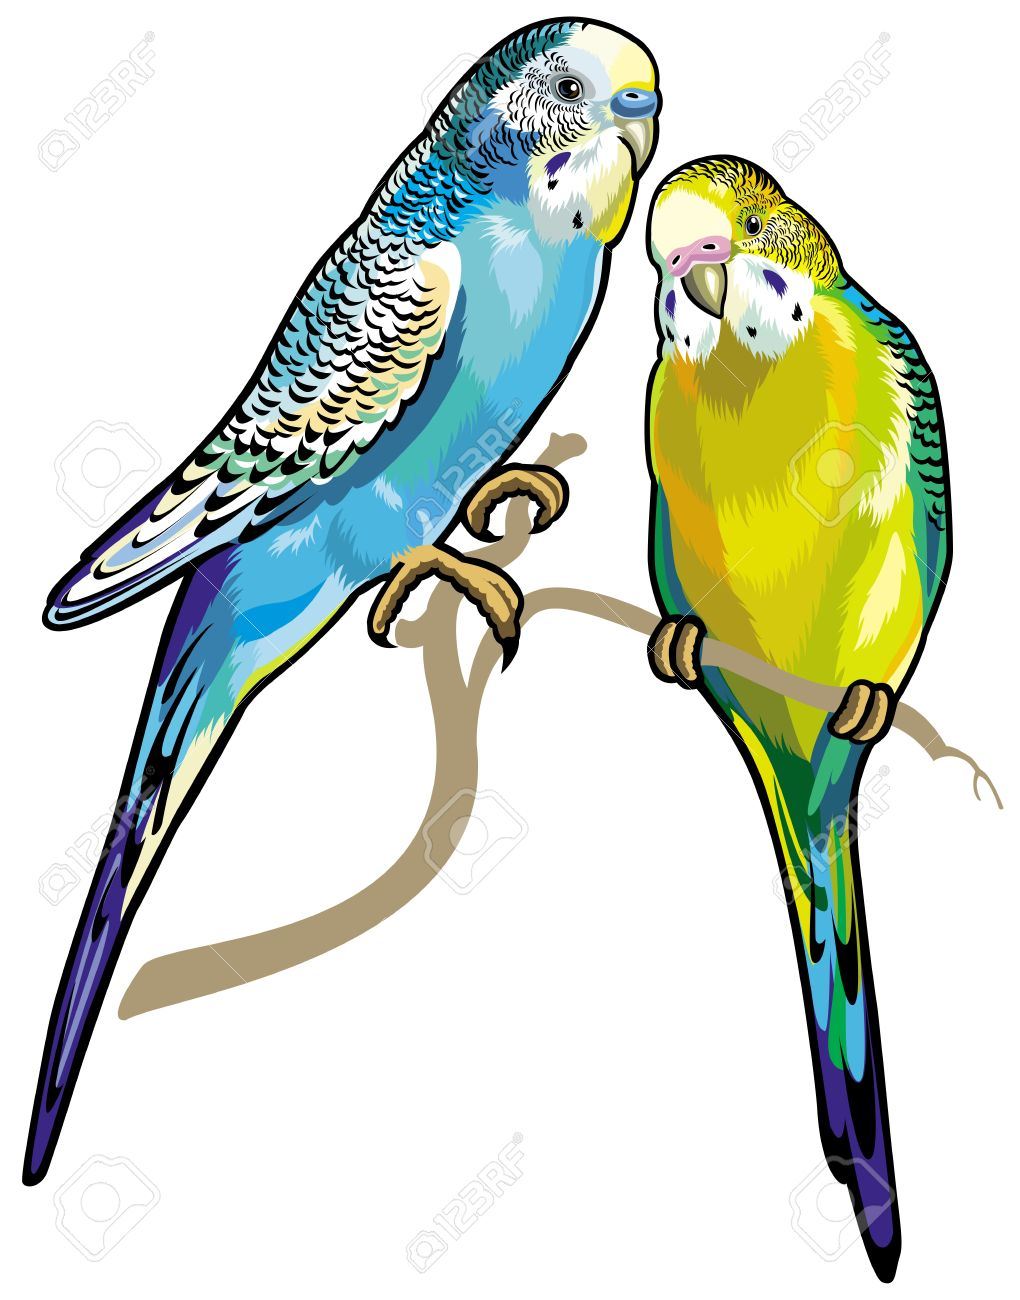 Budgerigars Australian Parakeets Isolated On White Background.